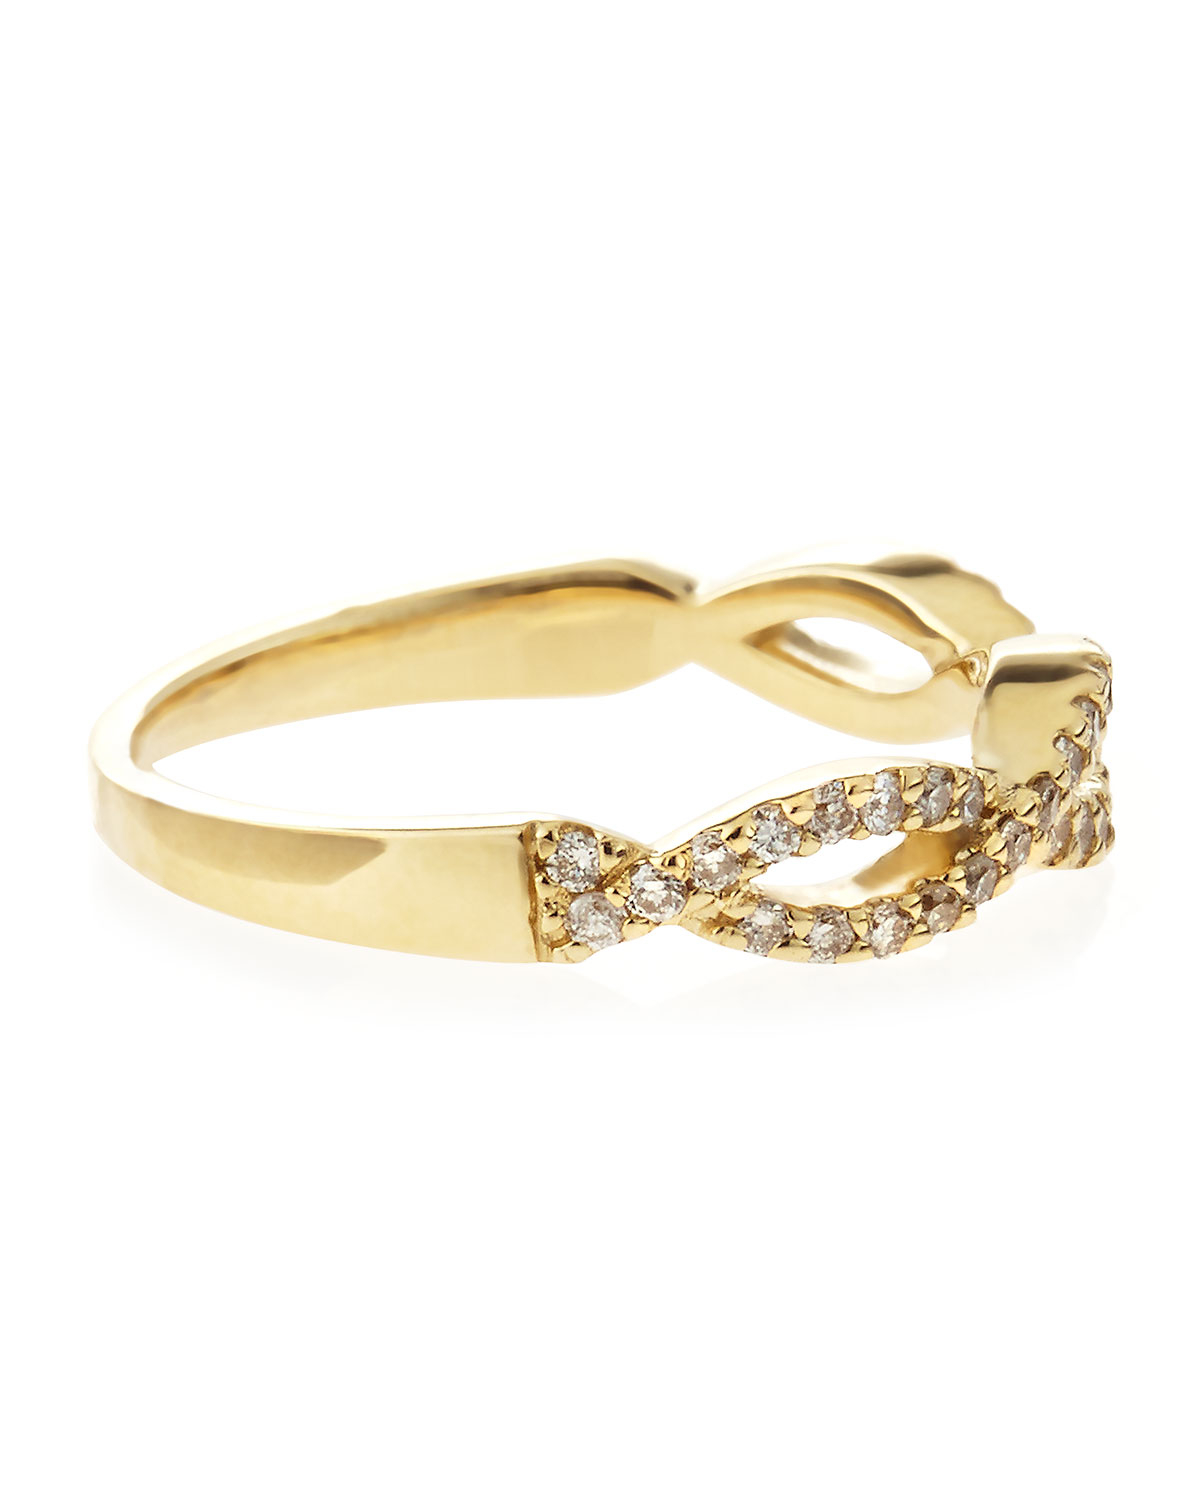 Lyst - Kc Designs 14k Diamond Pave Stackable Twist Ring Yellow ...